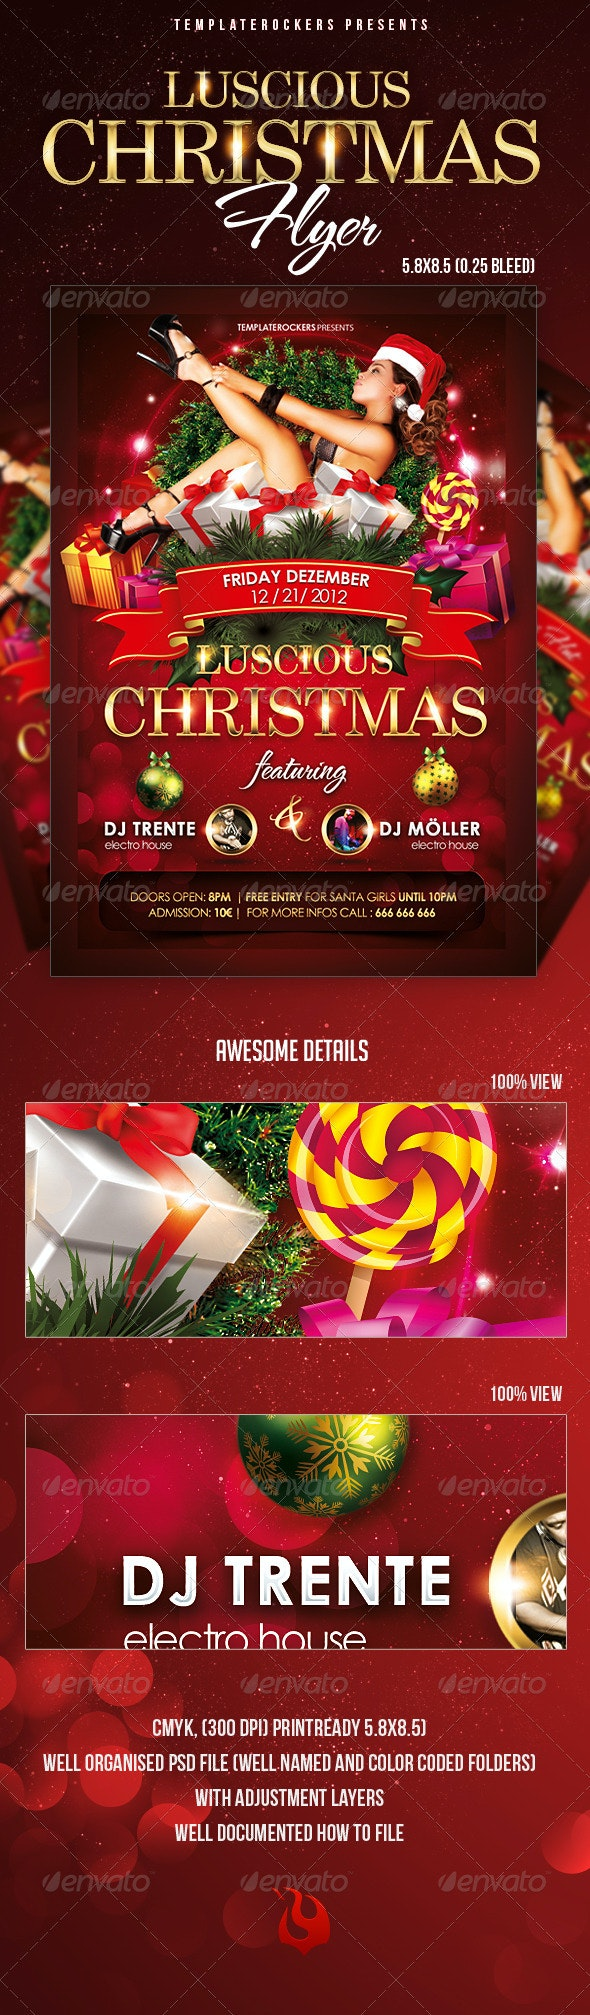 Luscious Christmas Flyer  - Clubs & Parties Events